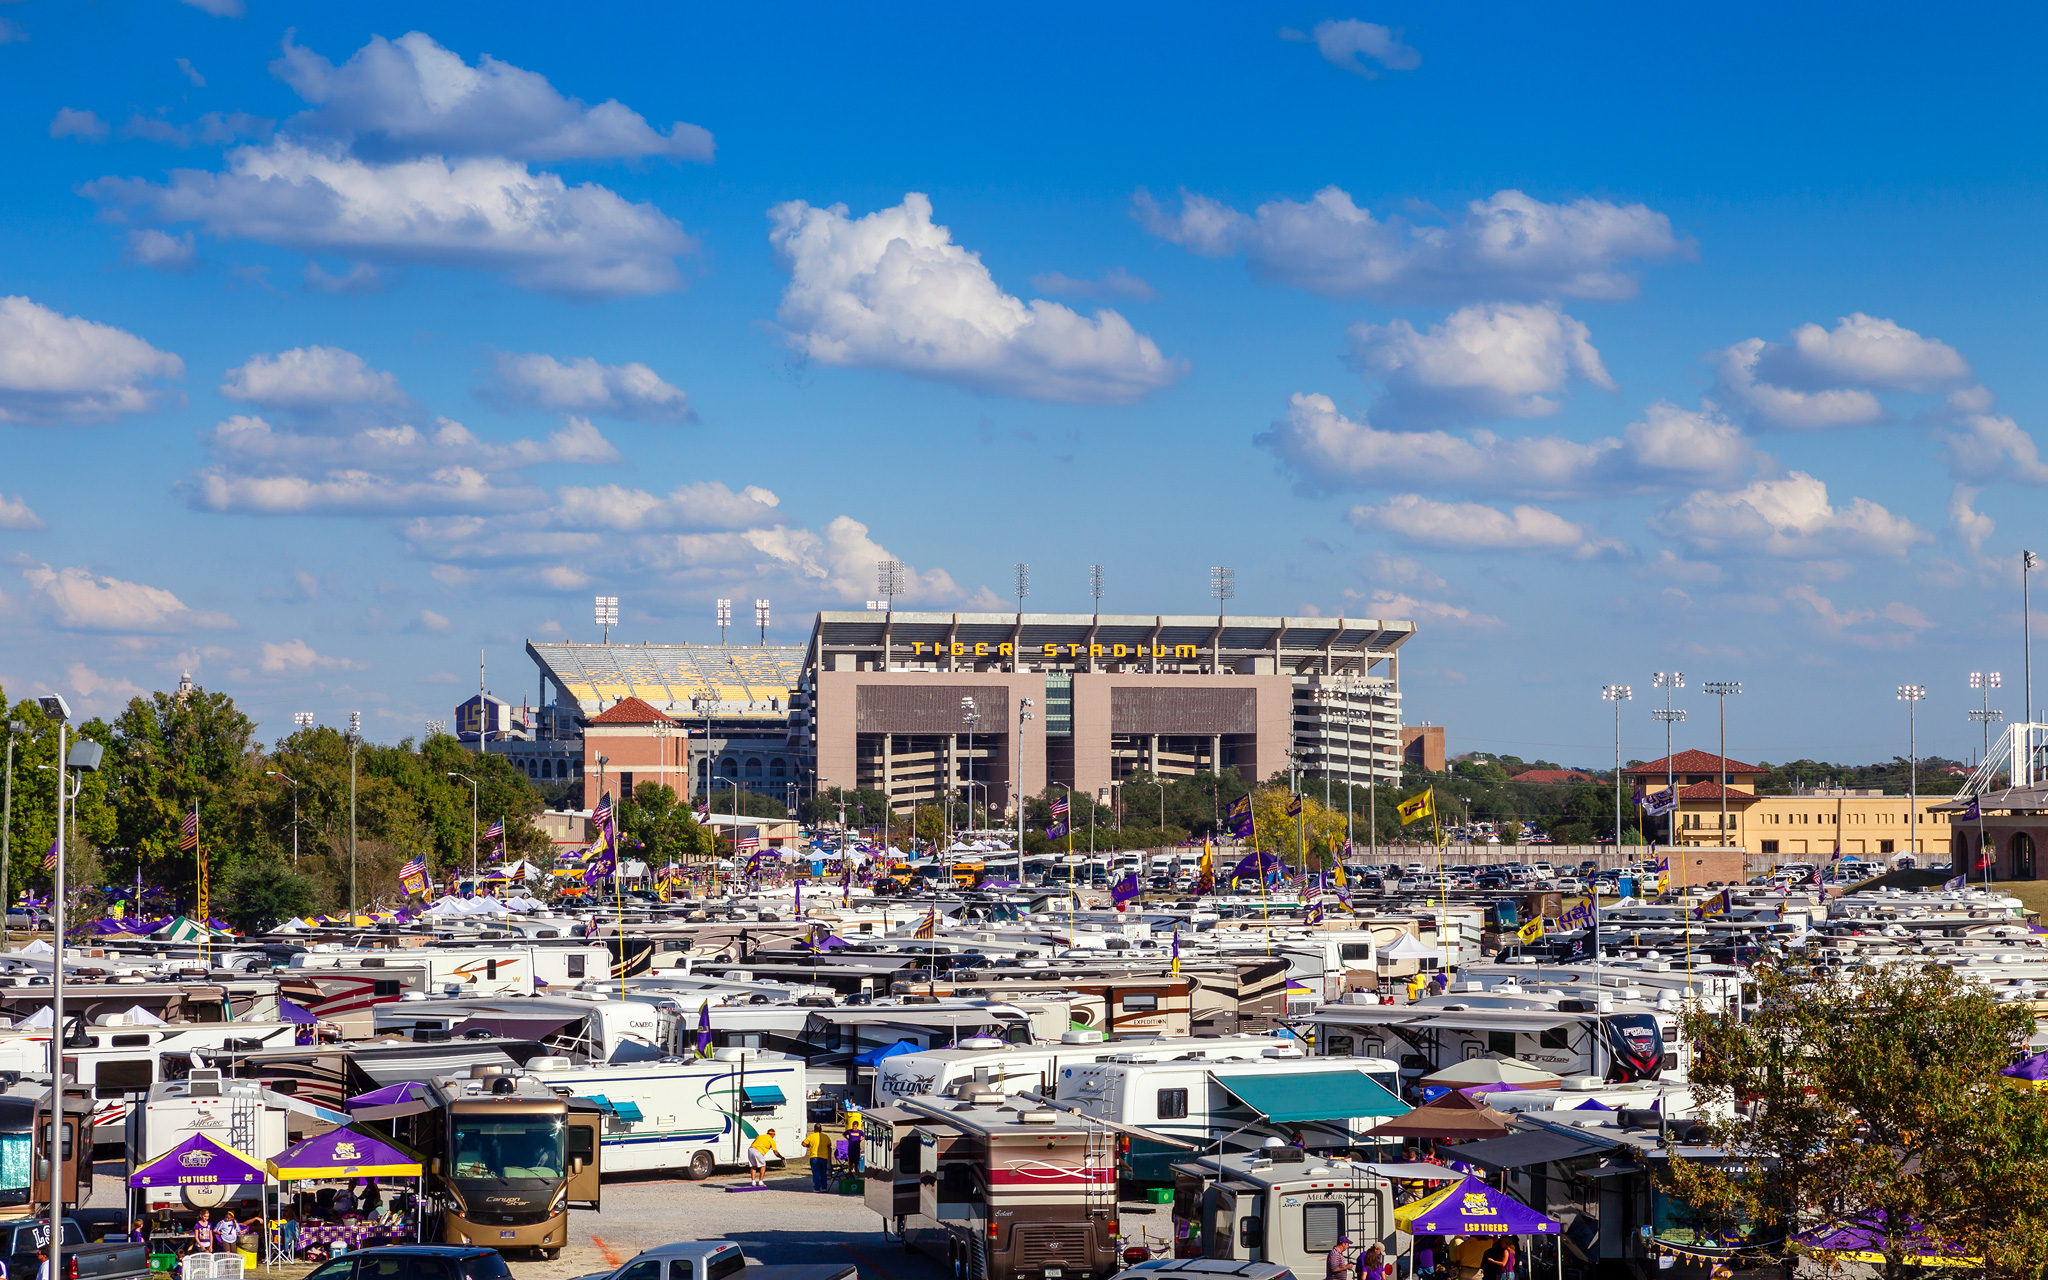 Tiger Stadium looms over the tailgate